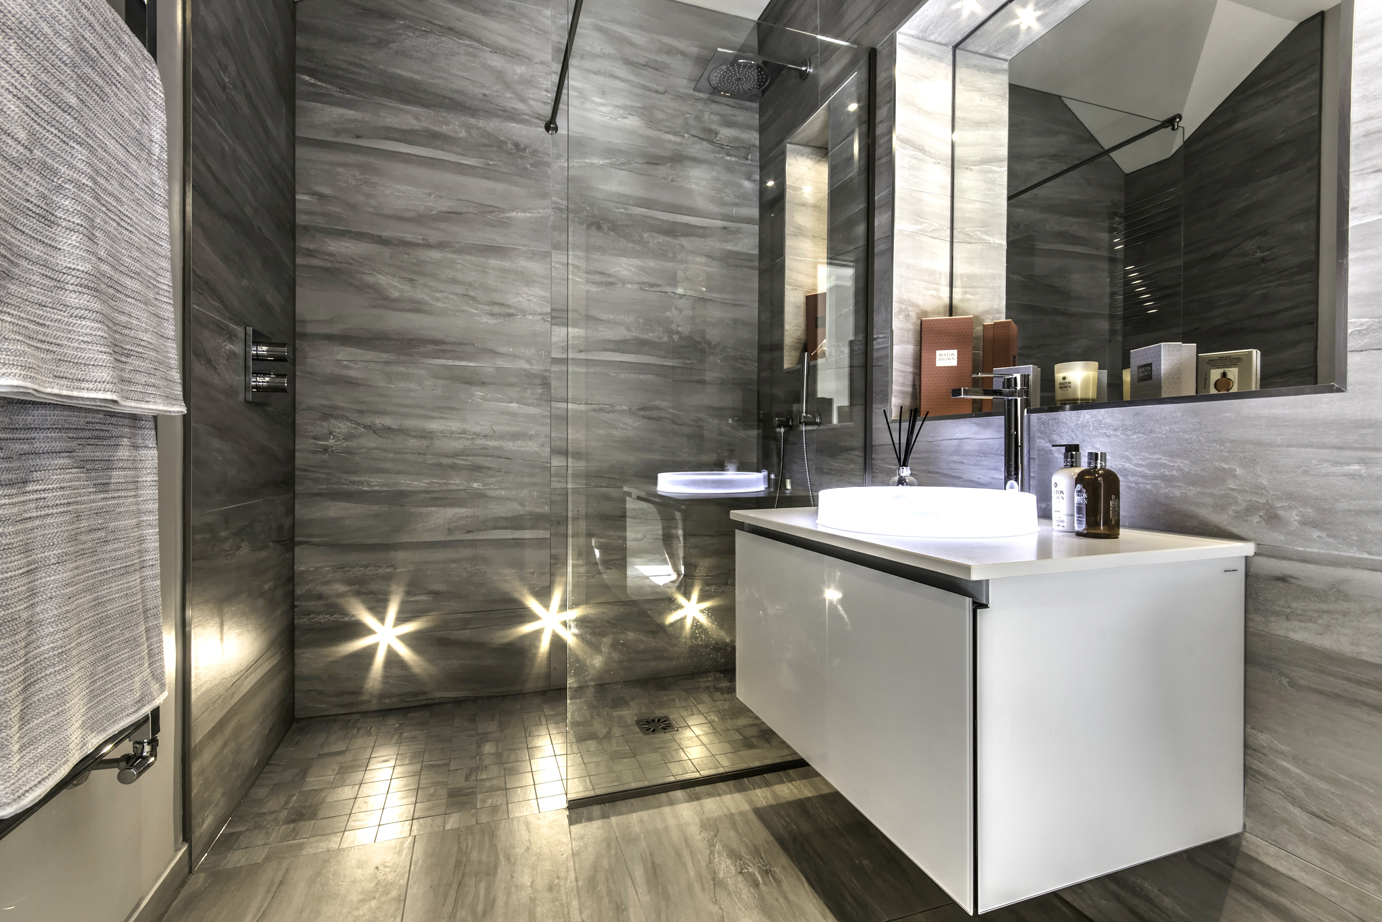 High end bathroom design for luxury new build apartments concept design Luxury bathroom design oxford